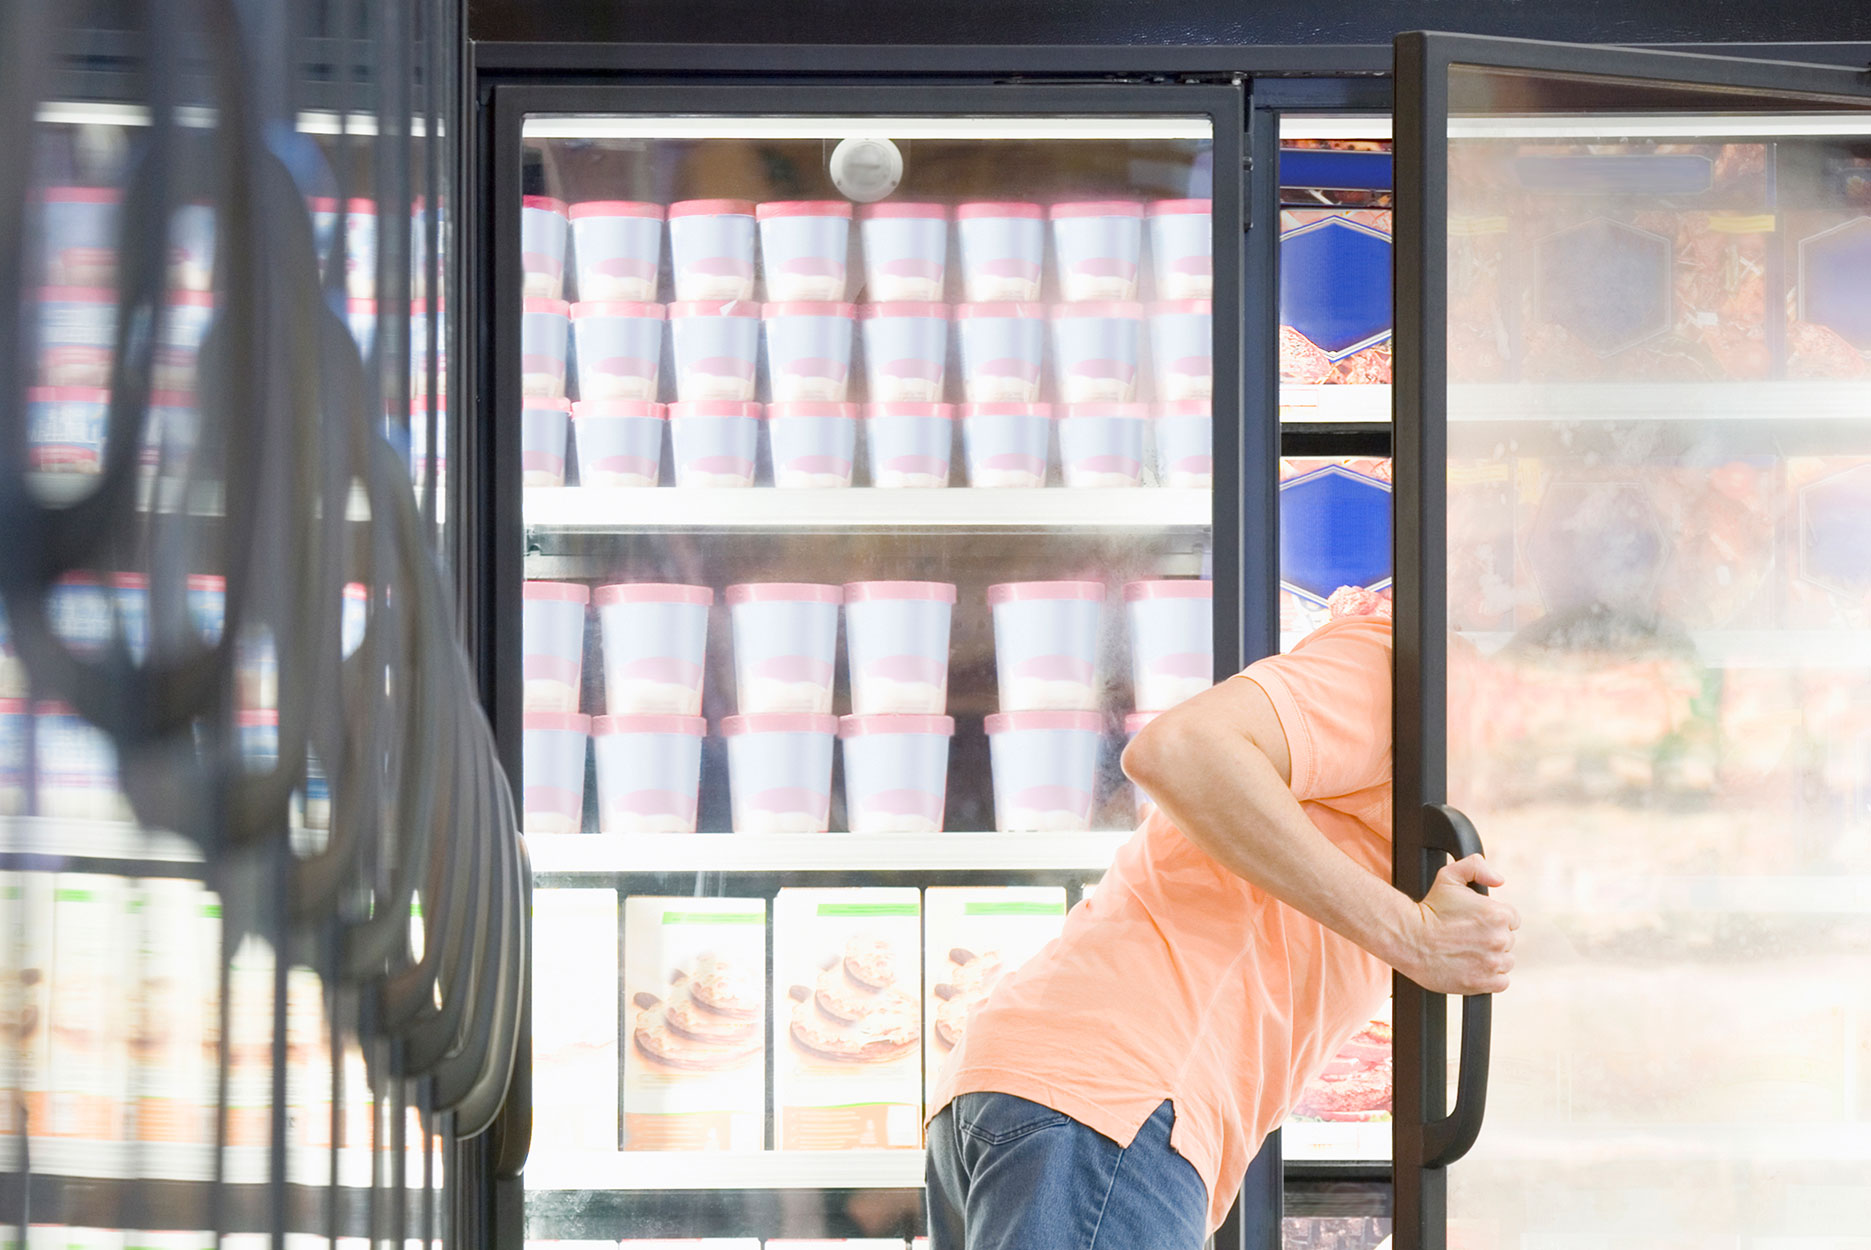 Man looking in freezer at a grocery store